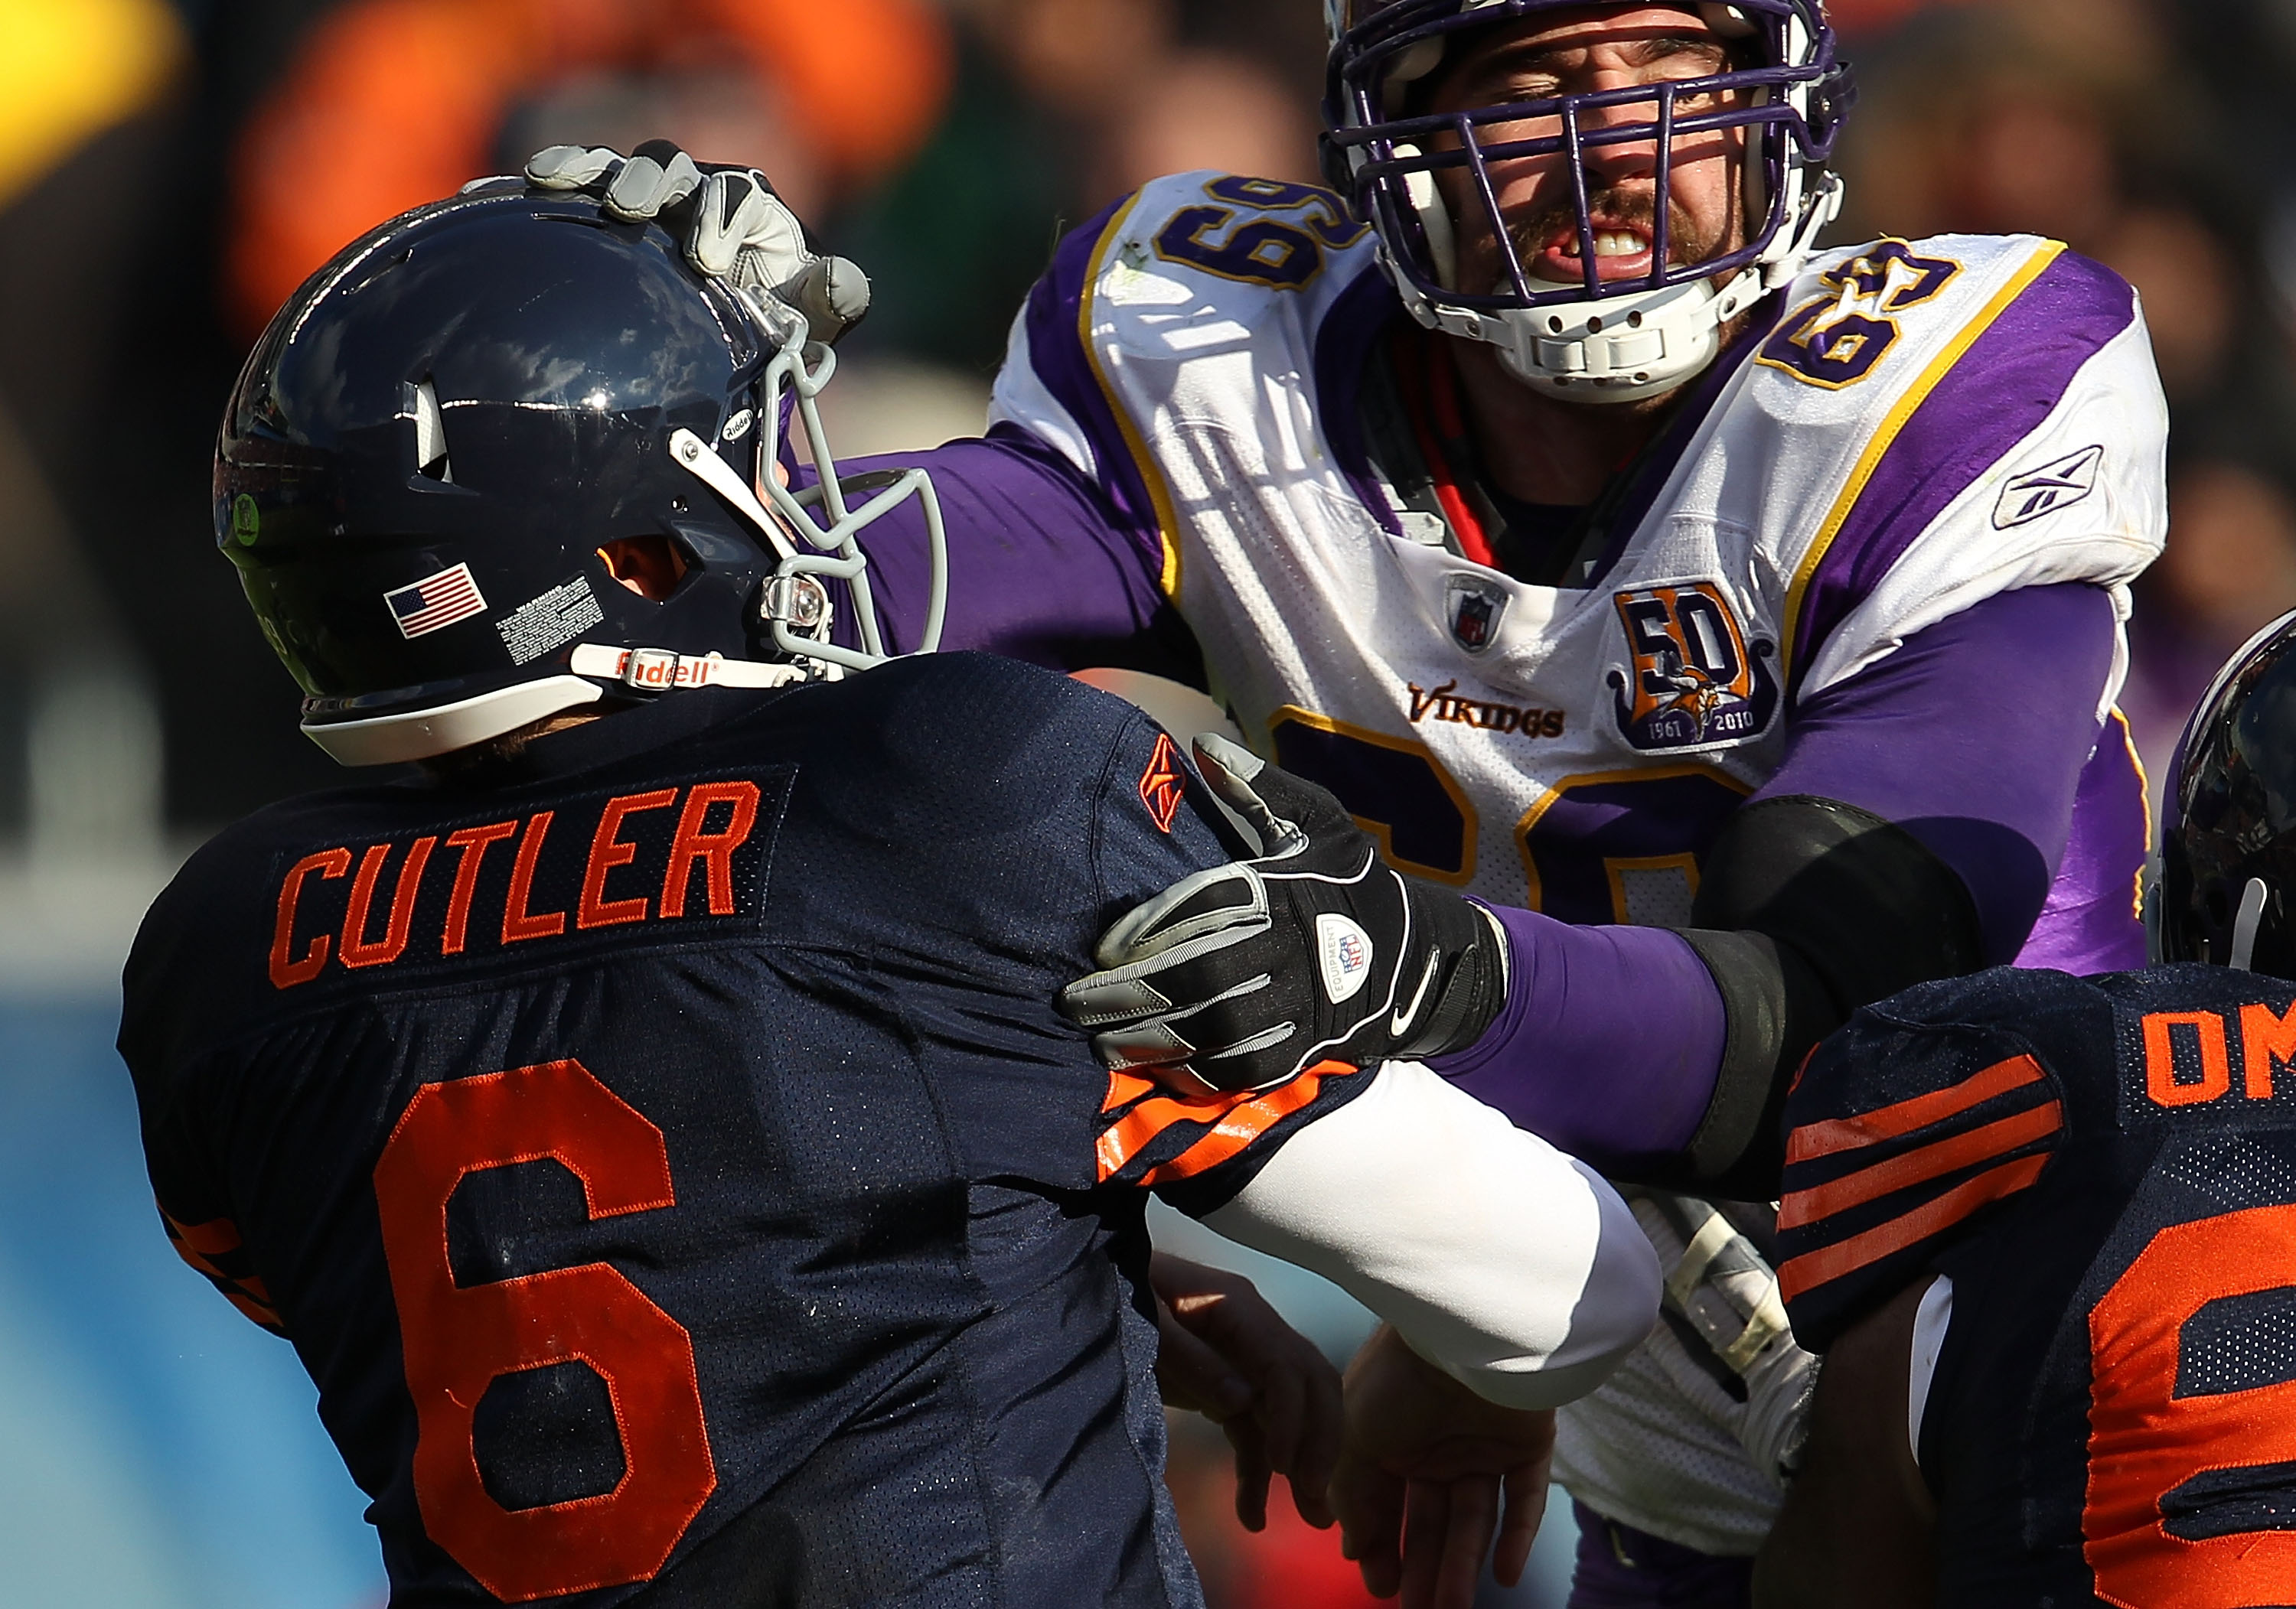 CHICAGO - NOVEMBER 14: Jay Cutler #6 of the Chicago Bears is hit after throwing by Jared Allen #69 of the Minnesota Vikings at Soldier Field on November 14, 2010 in Chicago, Illinois. The Bears defeated the Vikings 27-13. (Photo by Jonathan Daniel/Getty I